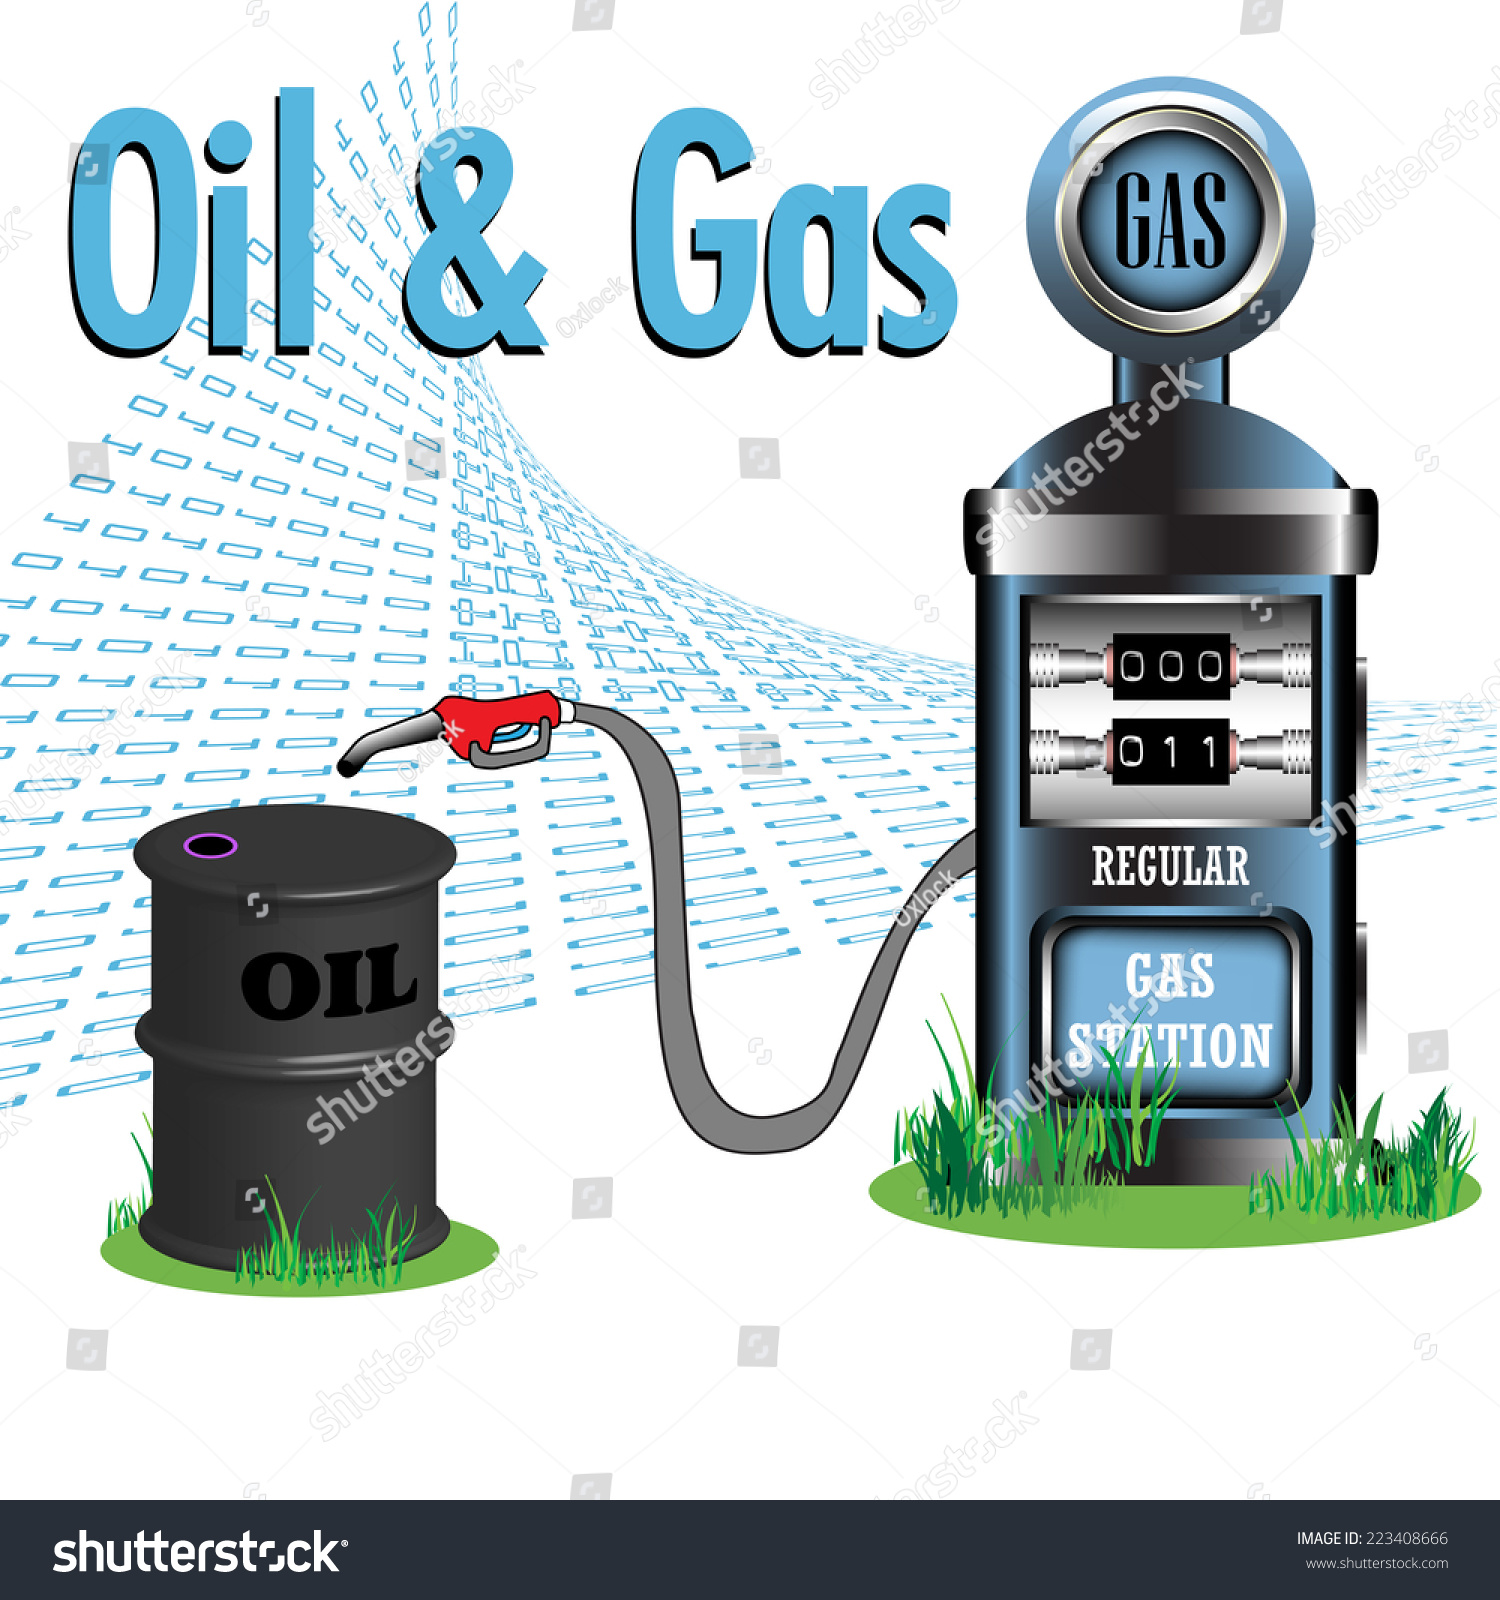 Dissertation Examples Oil And Gas